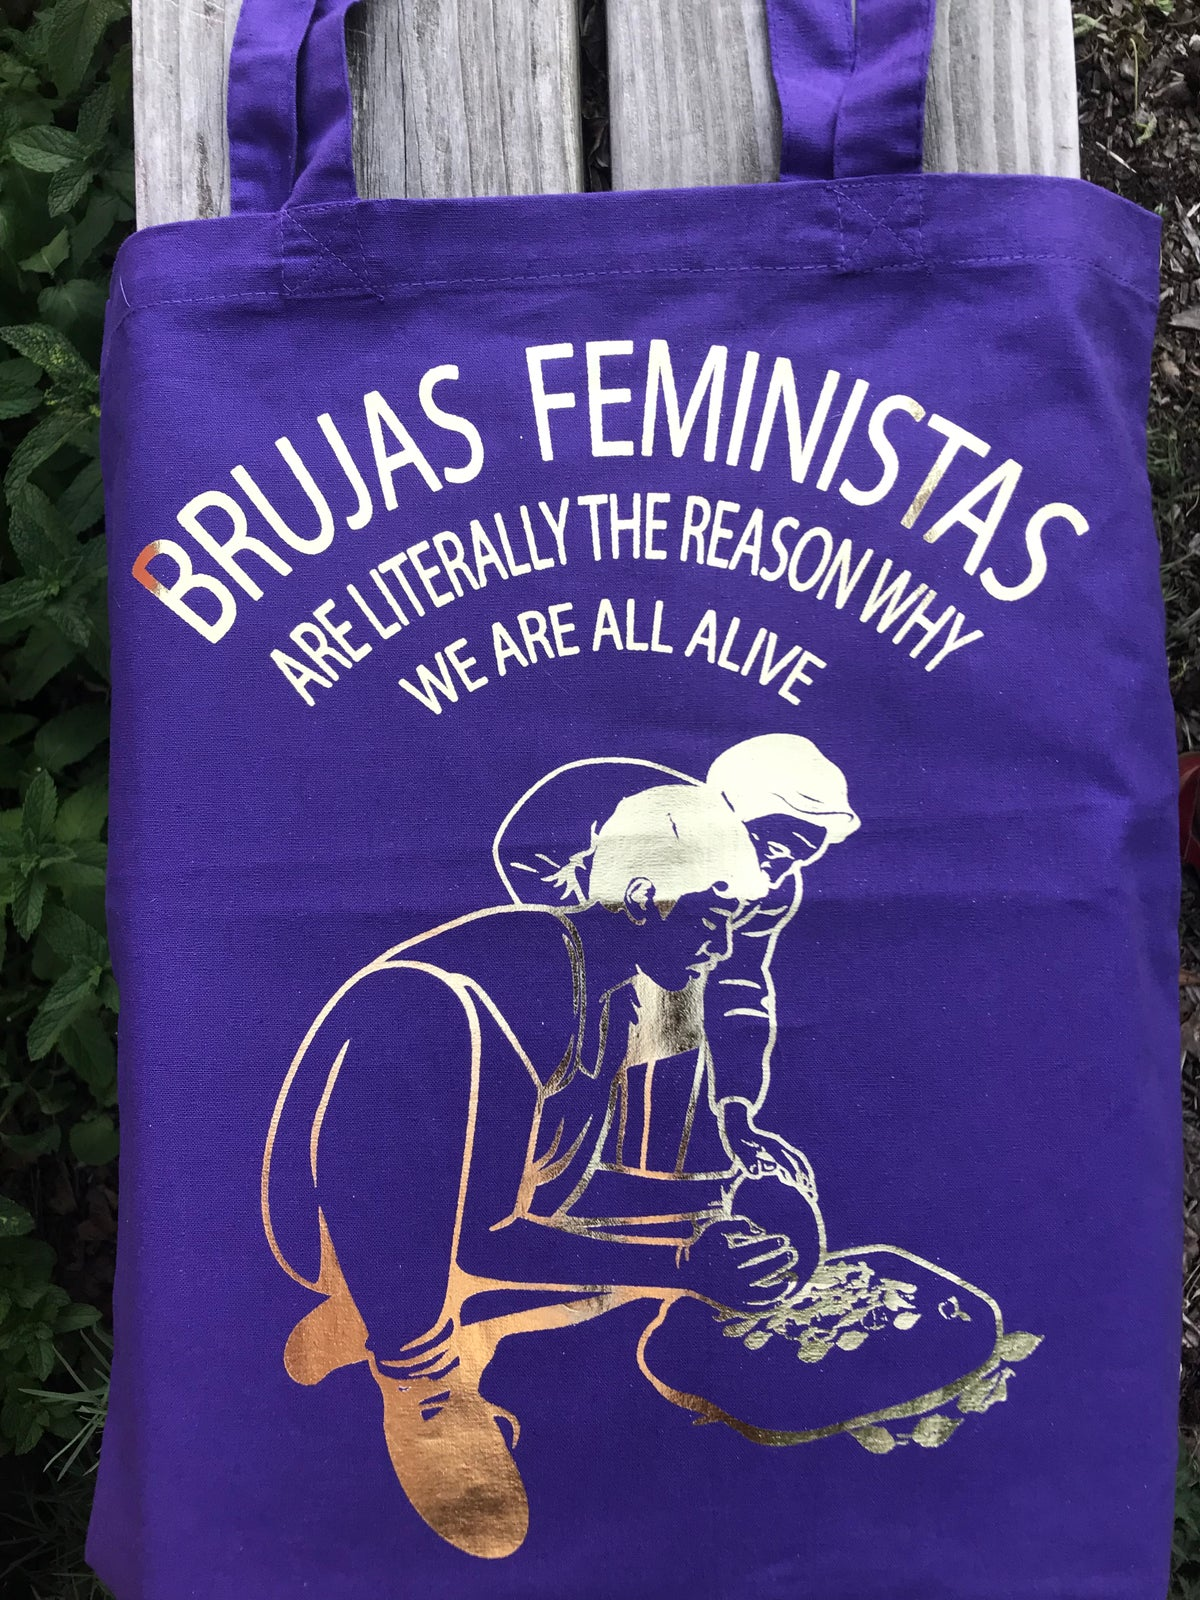 Image of Brujas Feministas Cotton Tote Bag